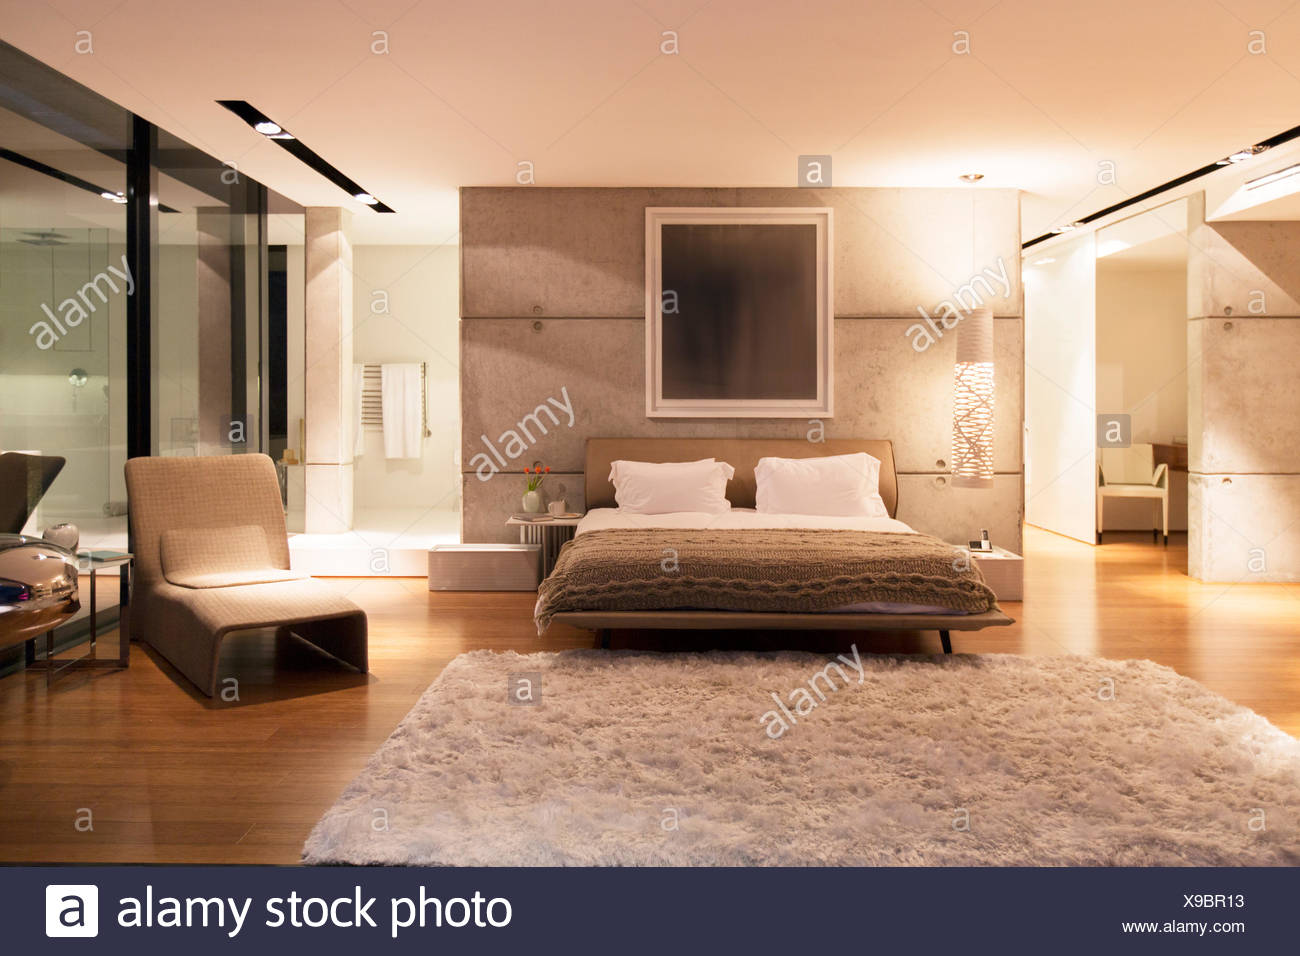 Shag rug in modern bedroom Stock Photo: 281157327 - Alamy